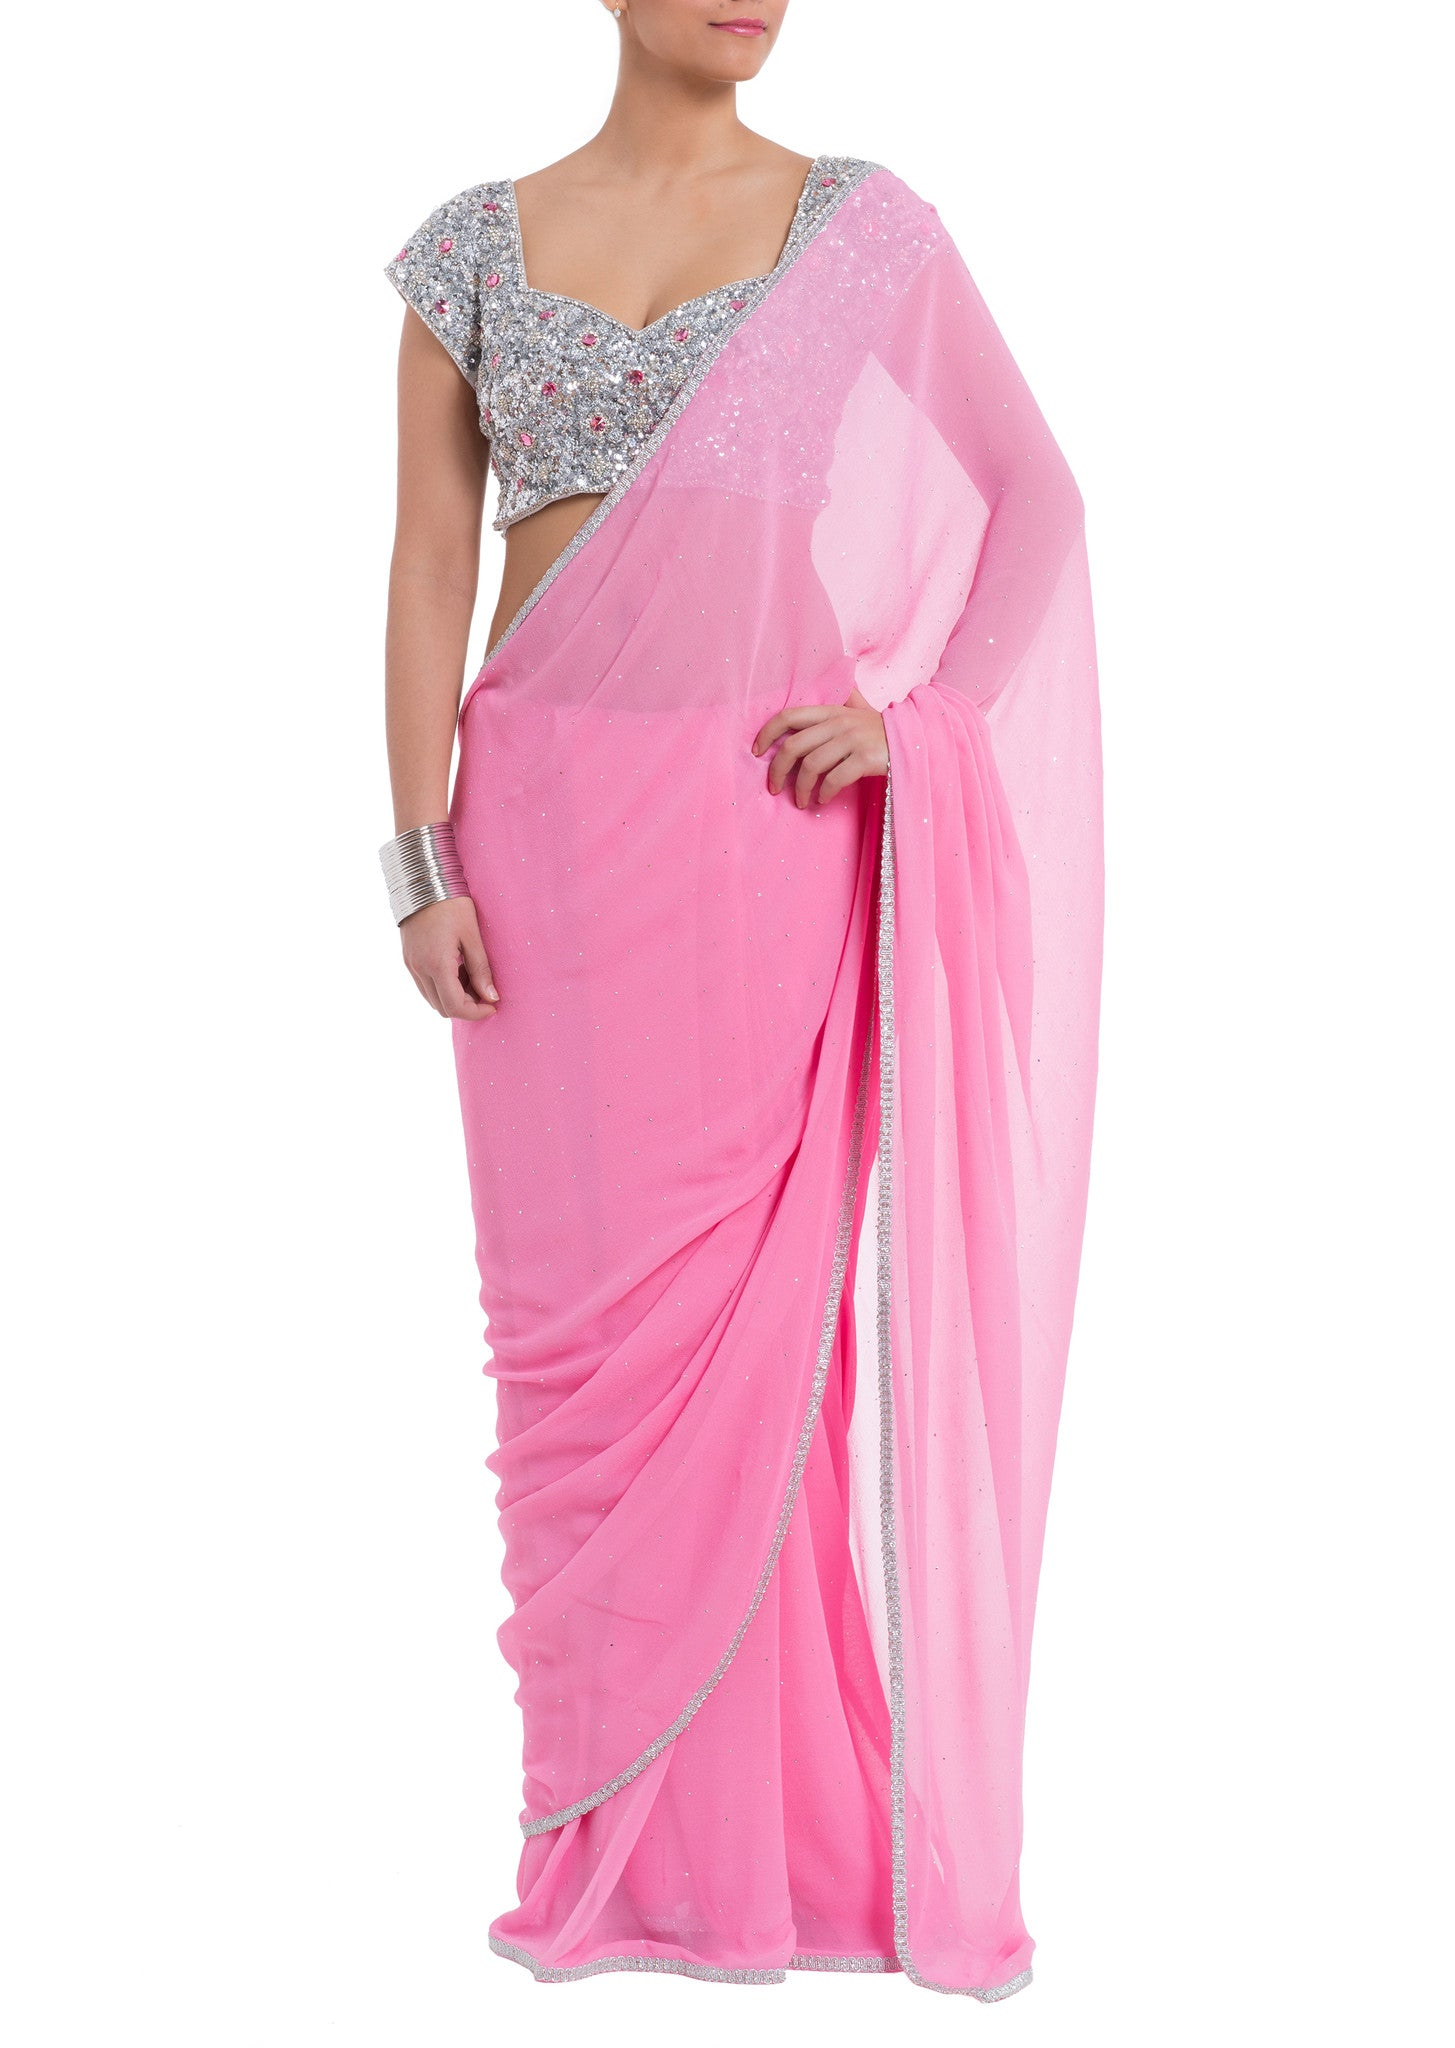 The Bhavana Pandey Pink Jewel Saree